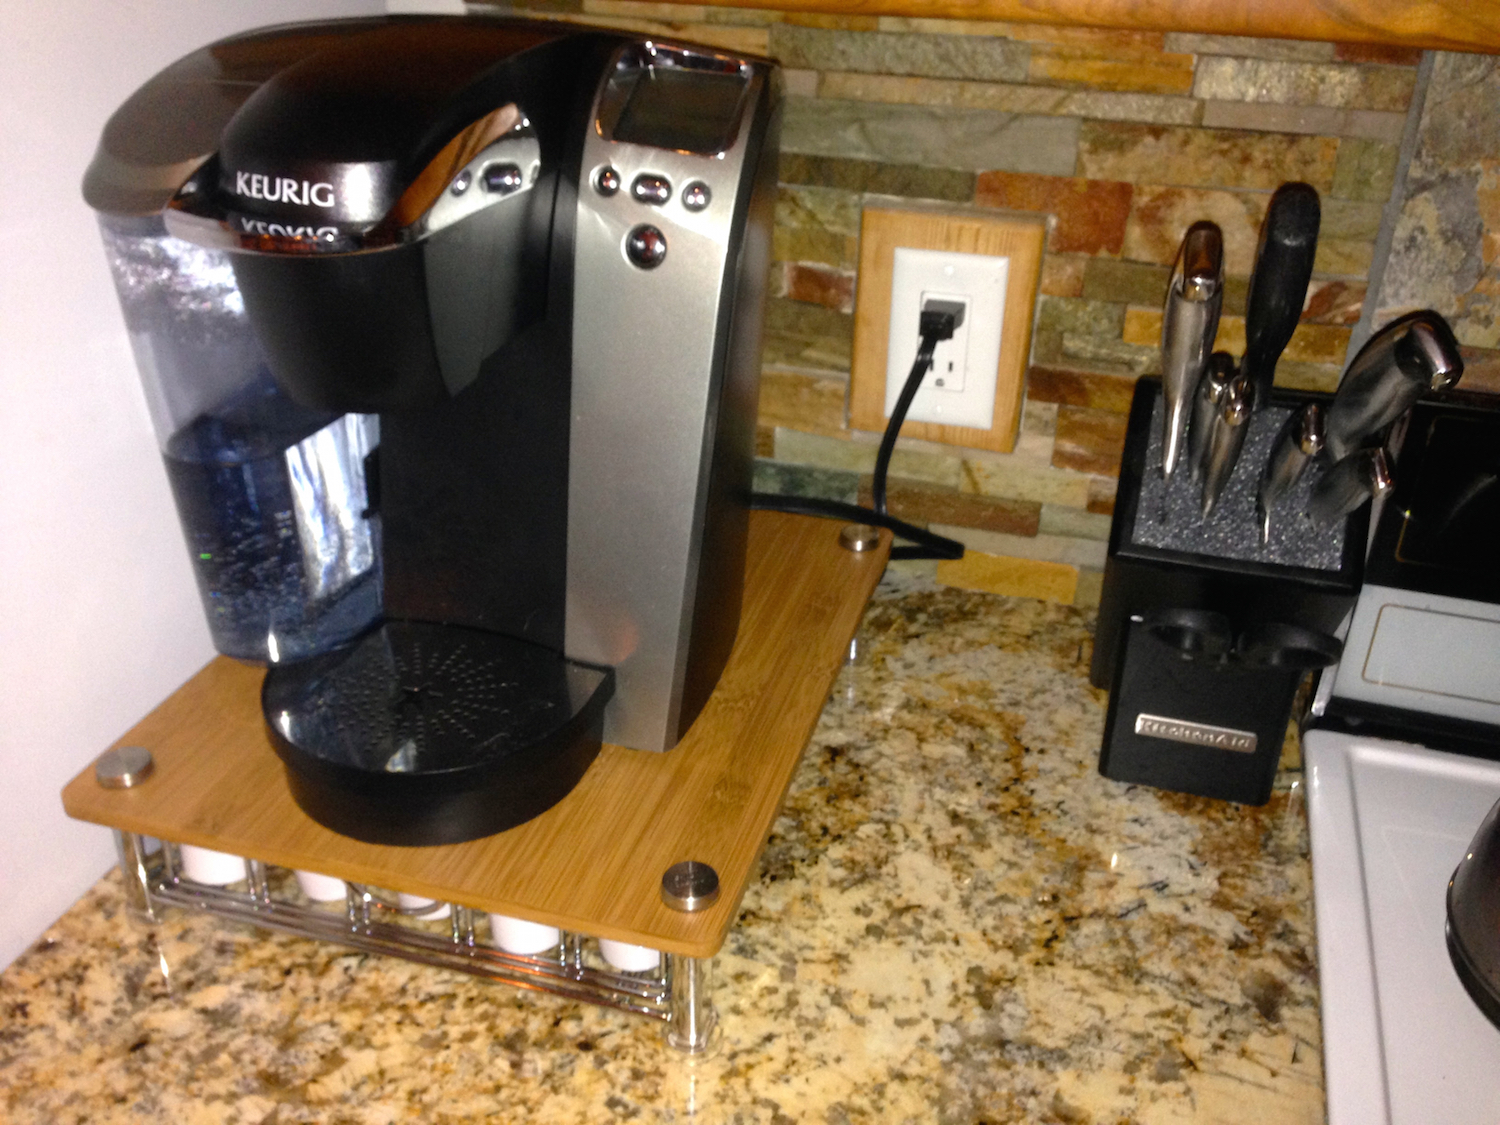 Keurig coffee maker and knives.